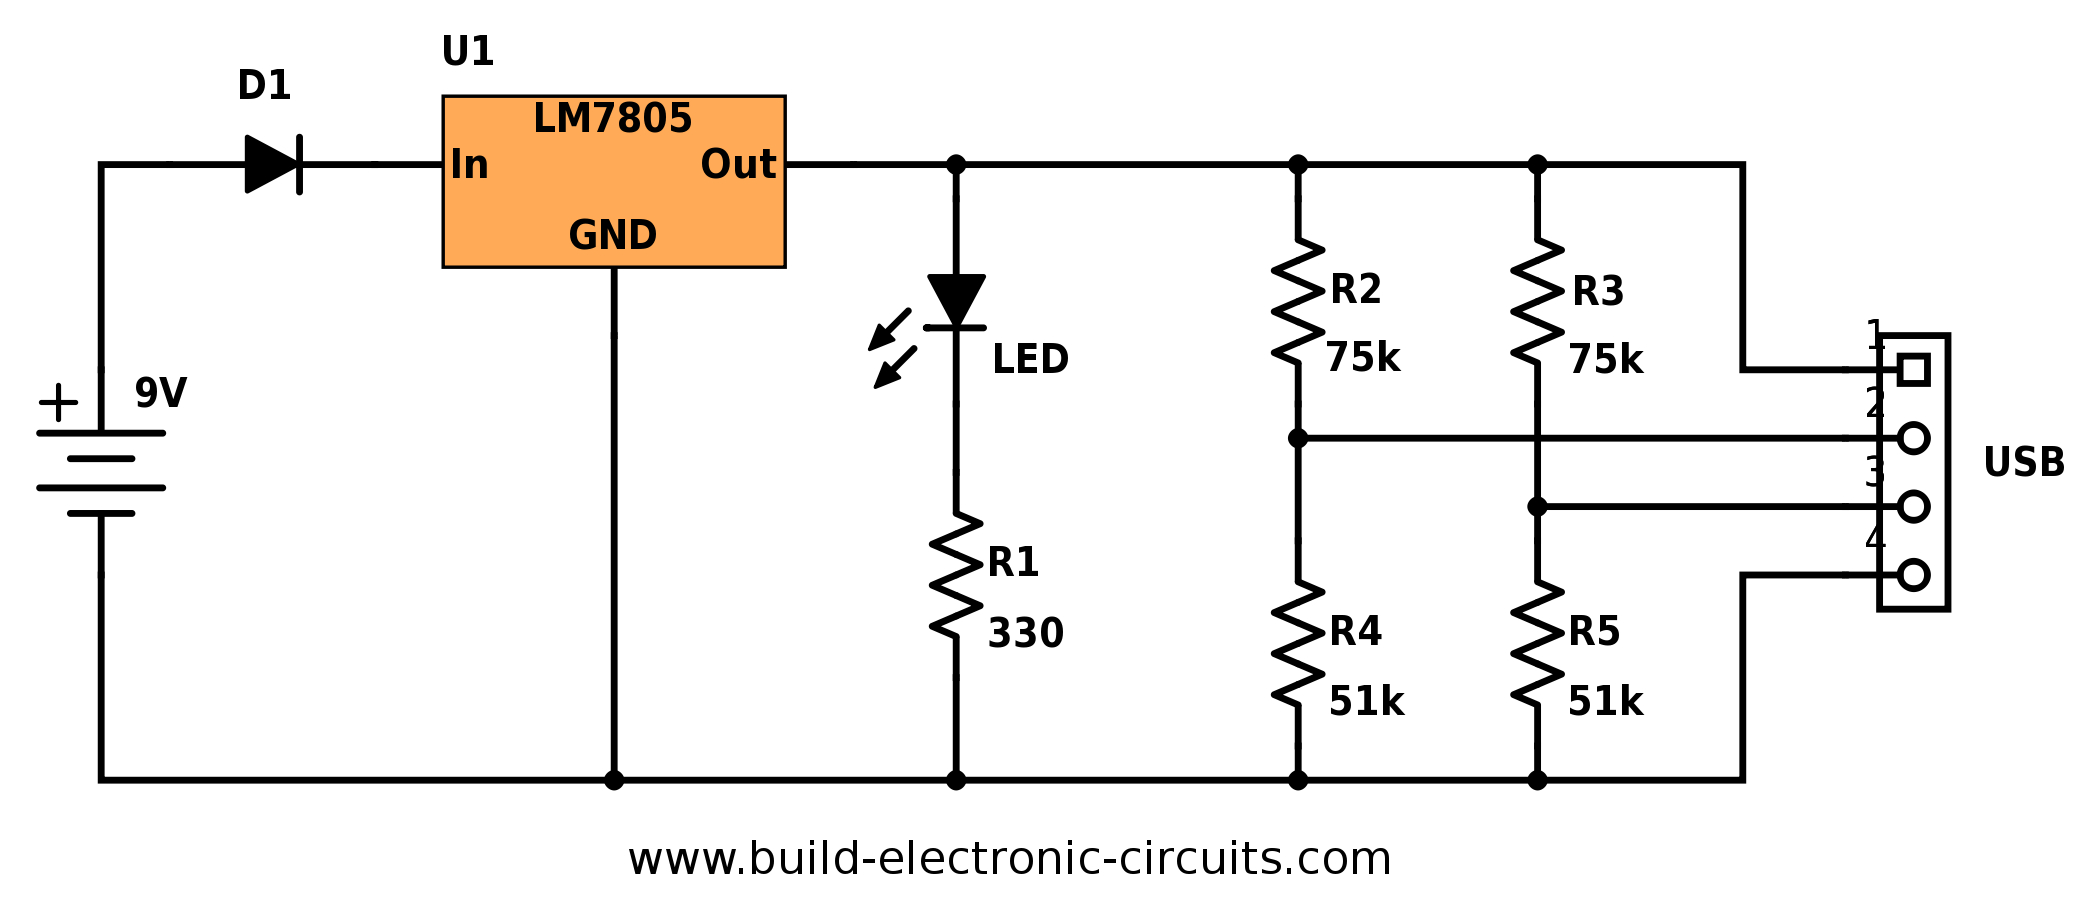 Portable Usb Charger Circuit - Build Electronic Circuits - Micro Usb Wall Charger Wiring Diagram